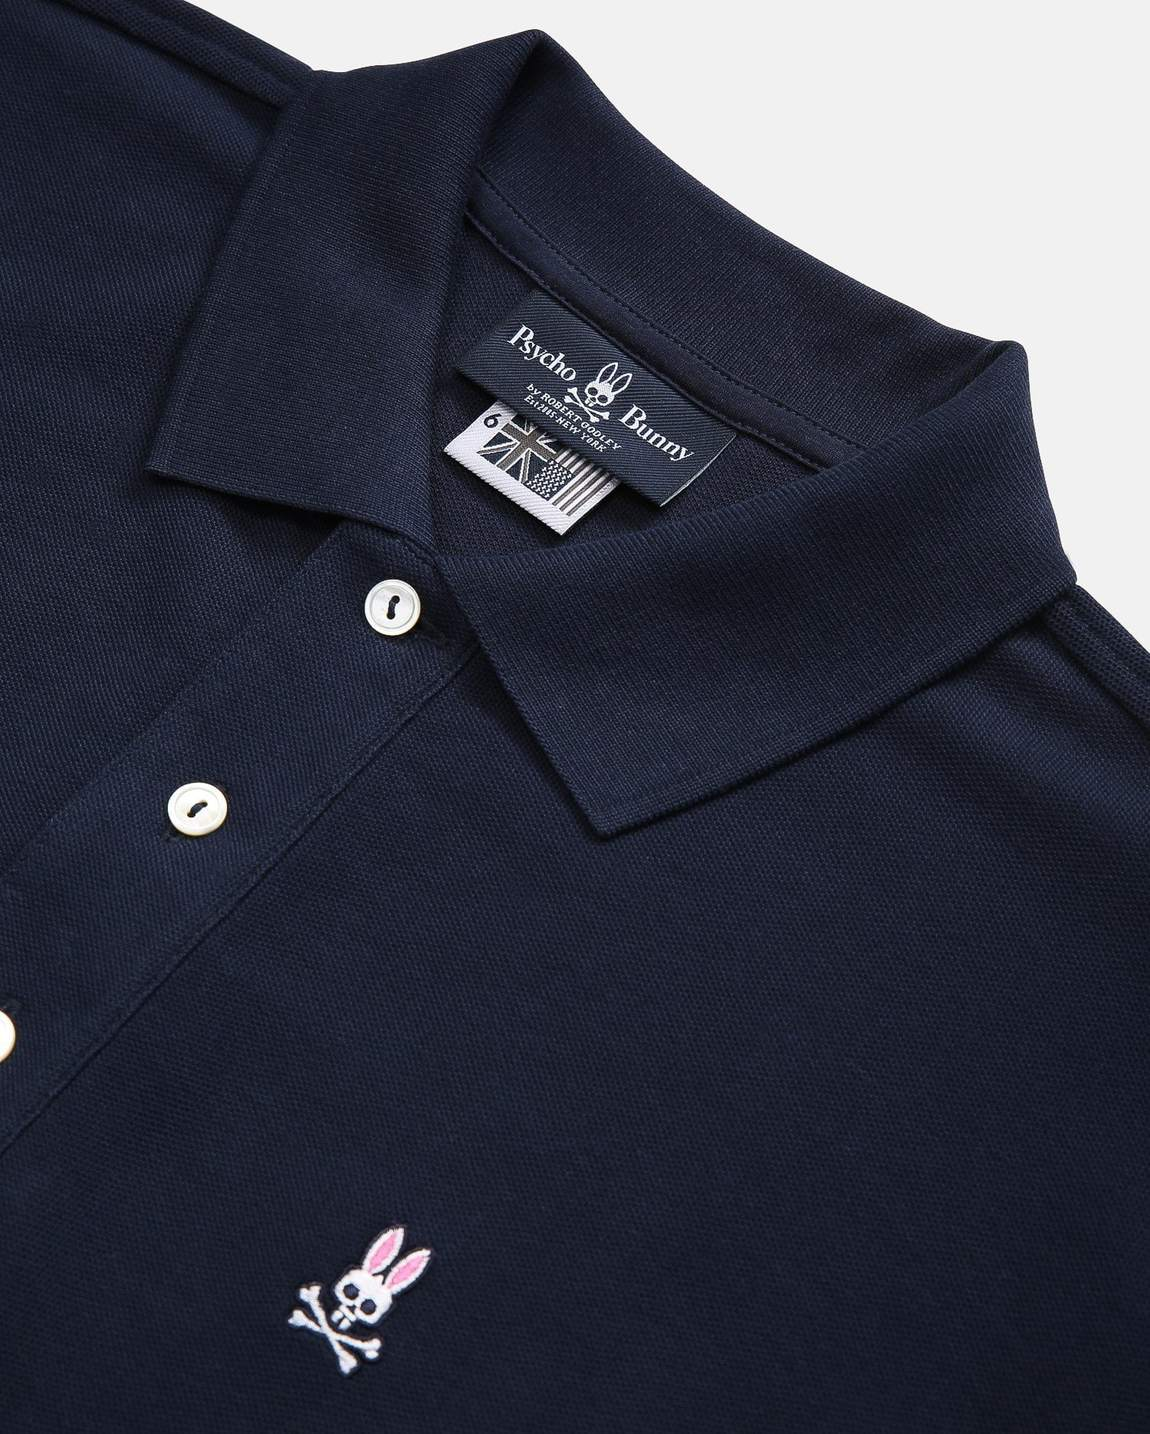 Psycho Bunny Navy Long Sleeve Polo-Shirt-6547